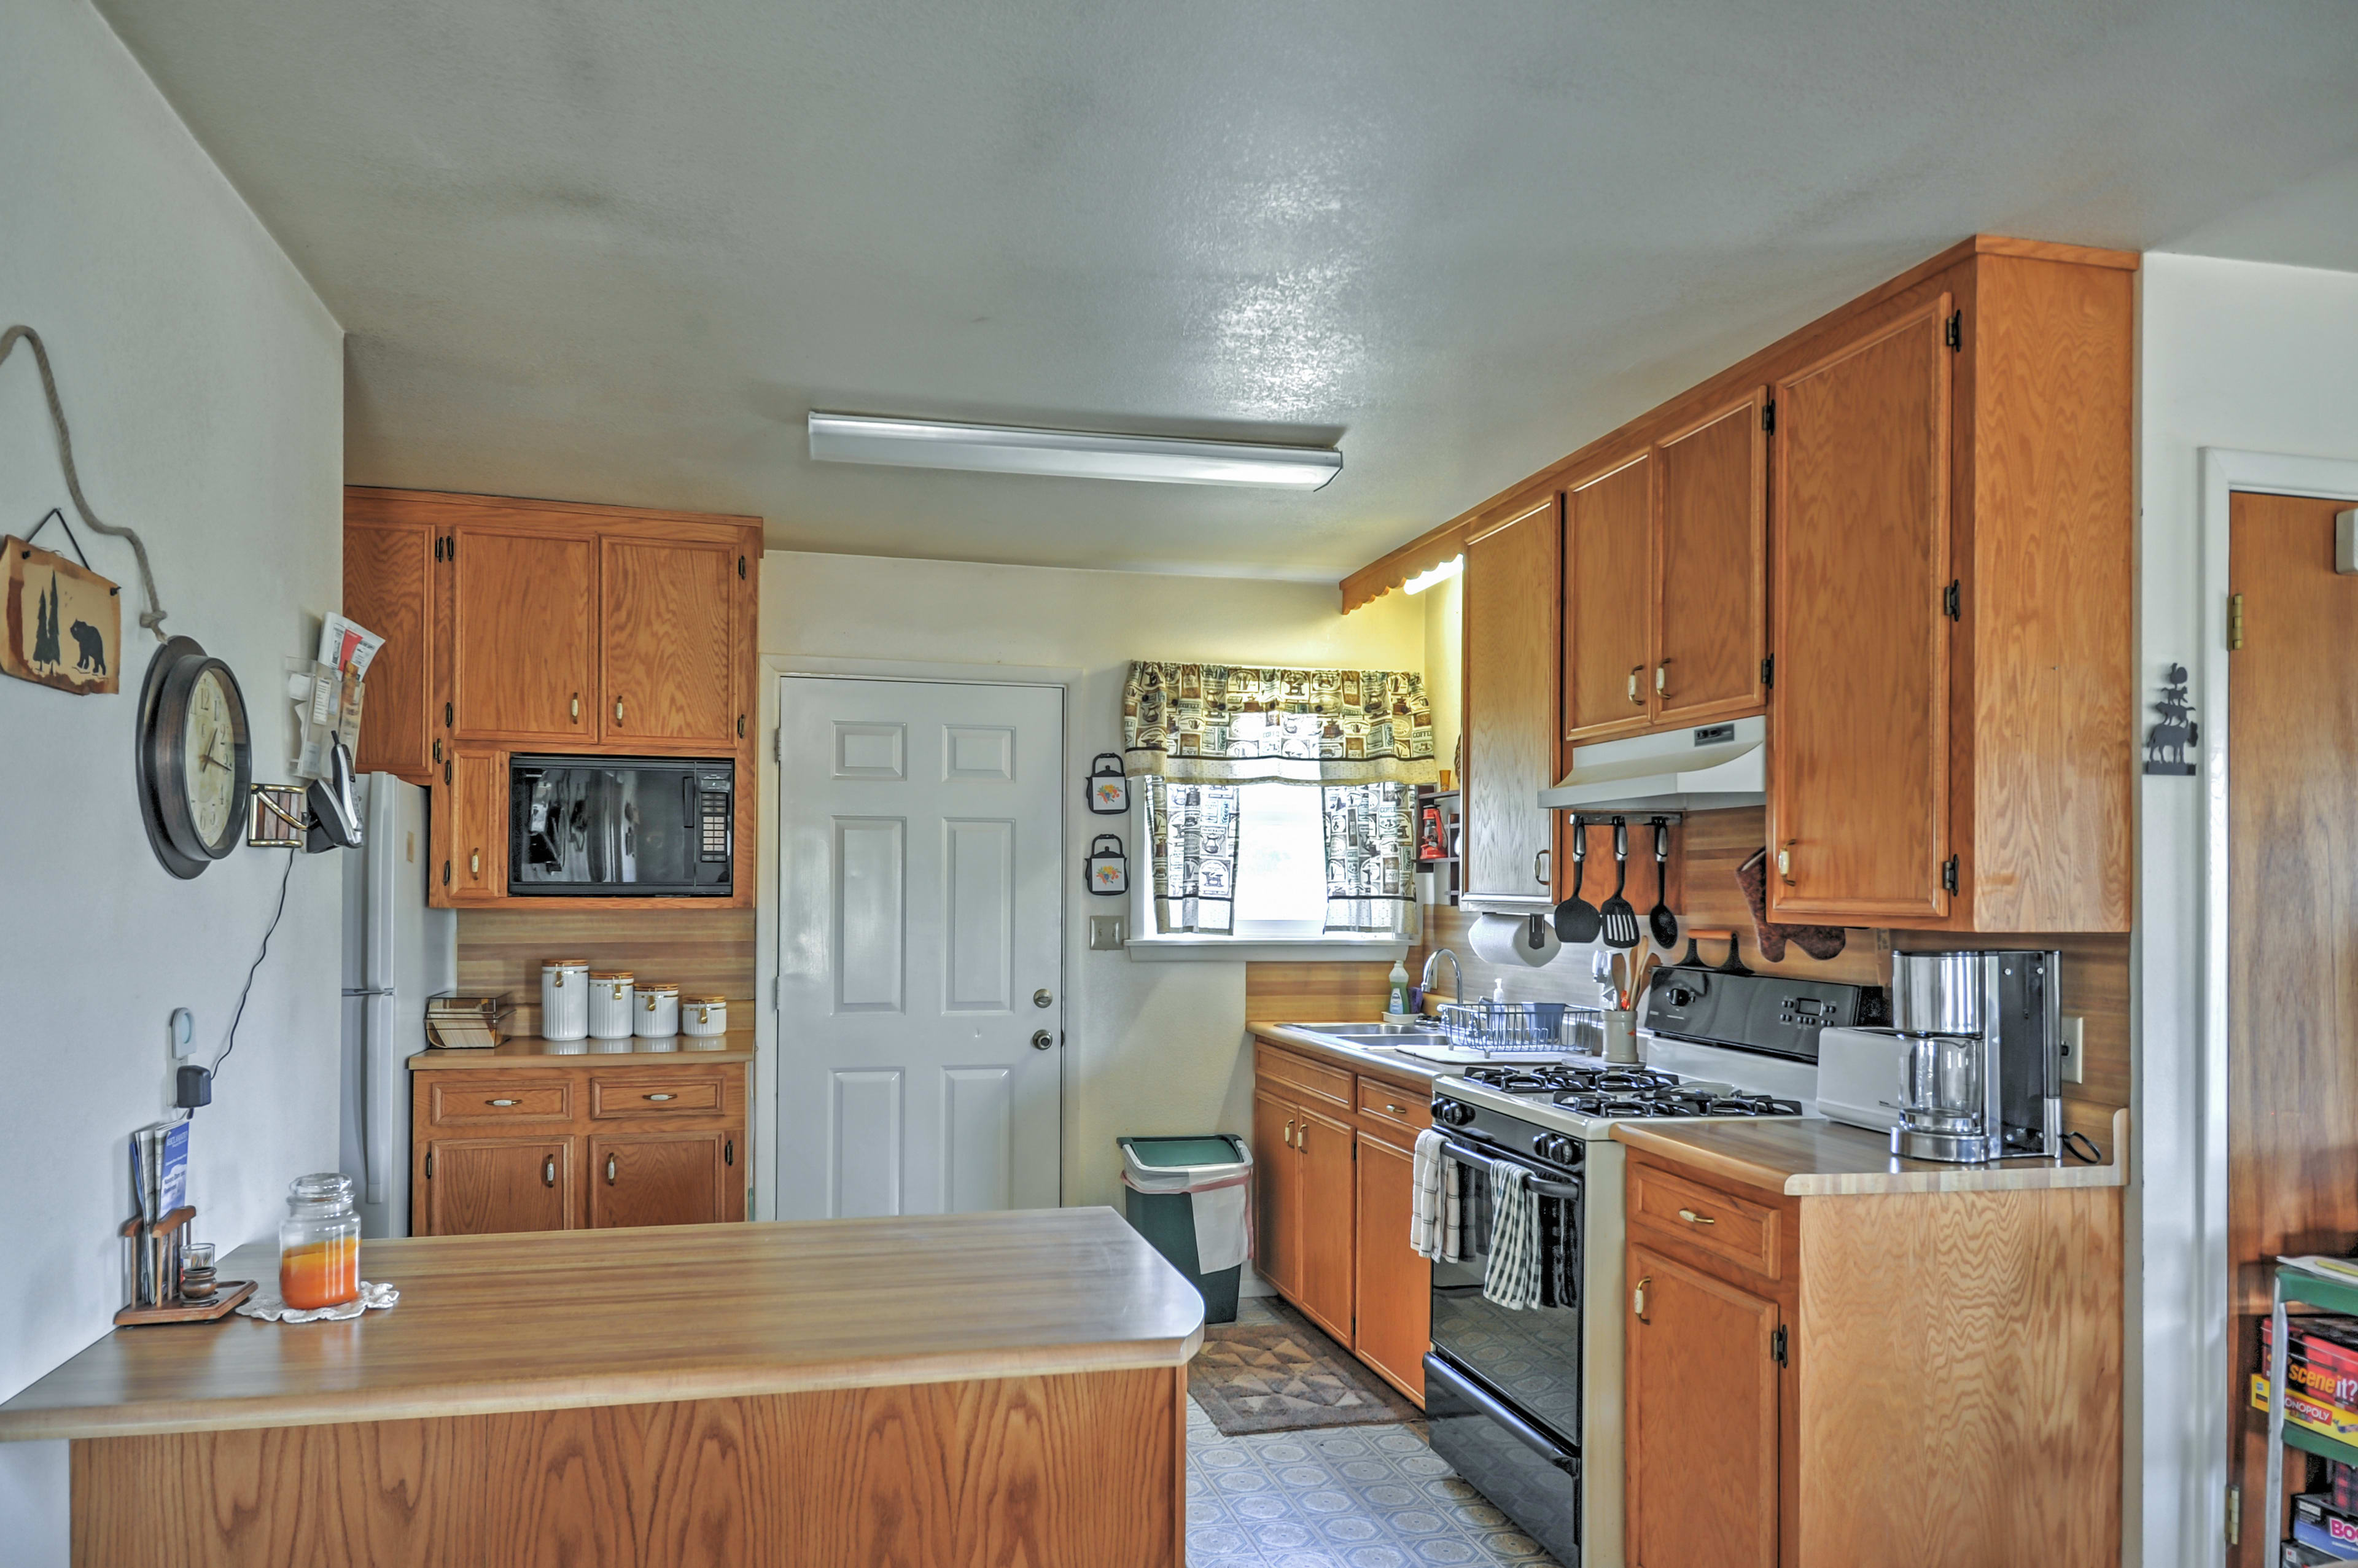 This quaint kitchen is ready to aid you in concocting delicious meals.